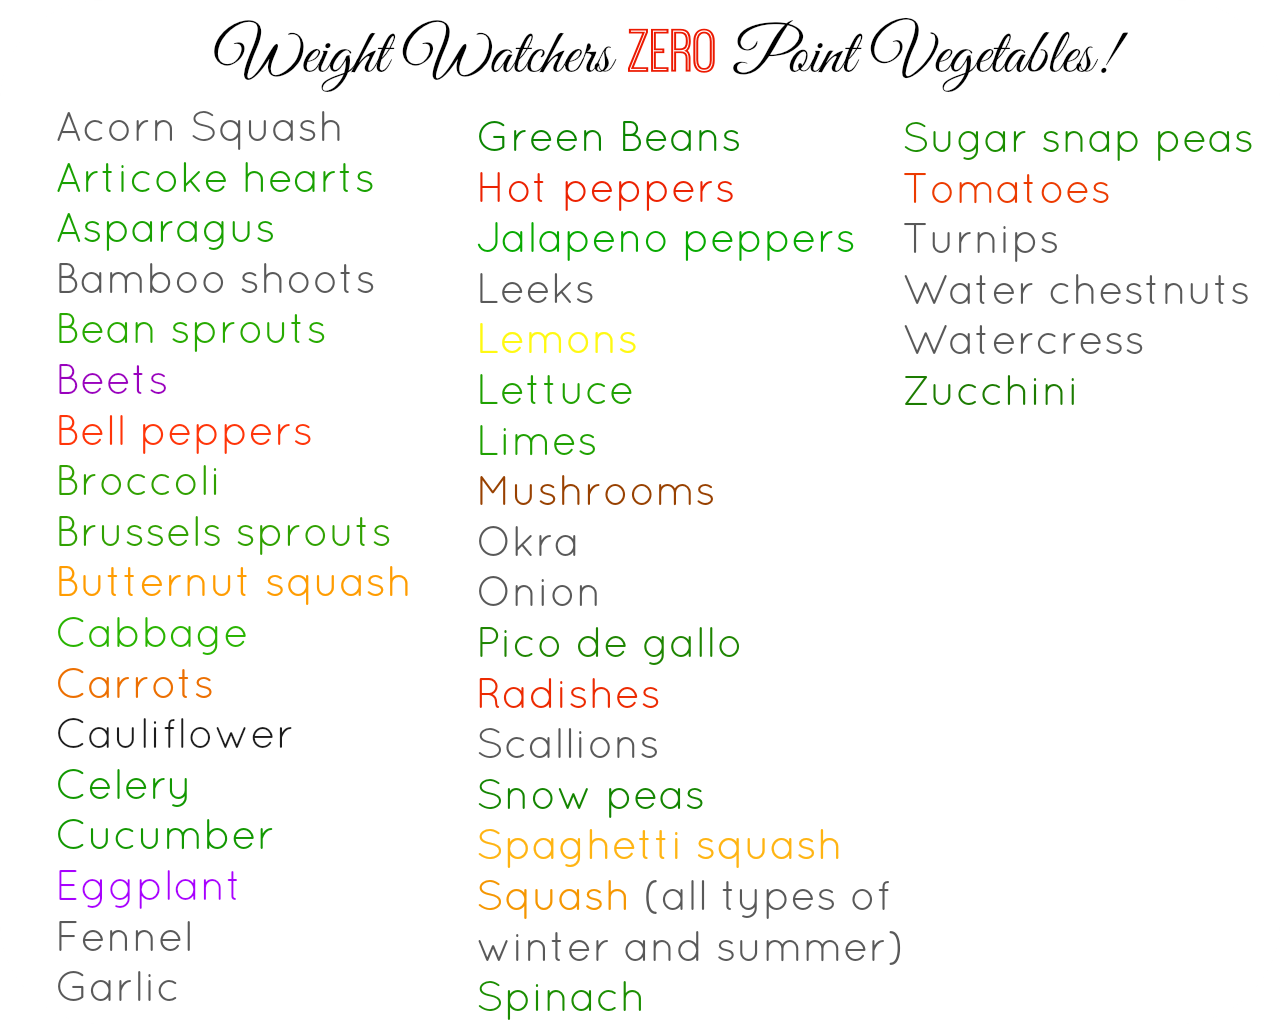 weight watchers zero point vegetables